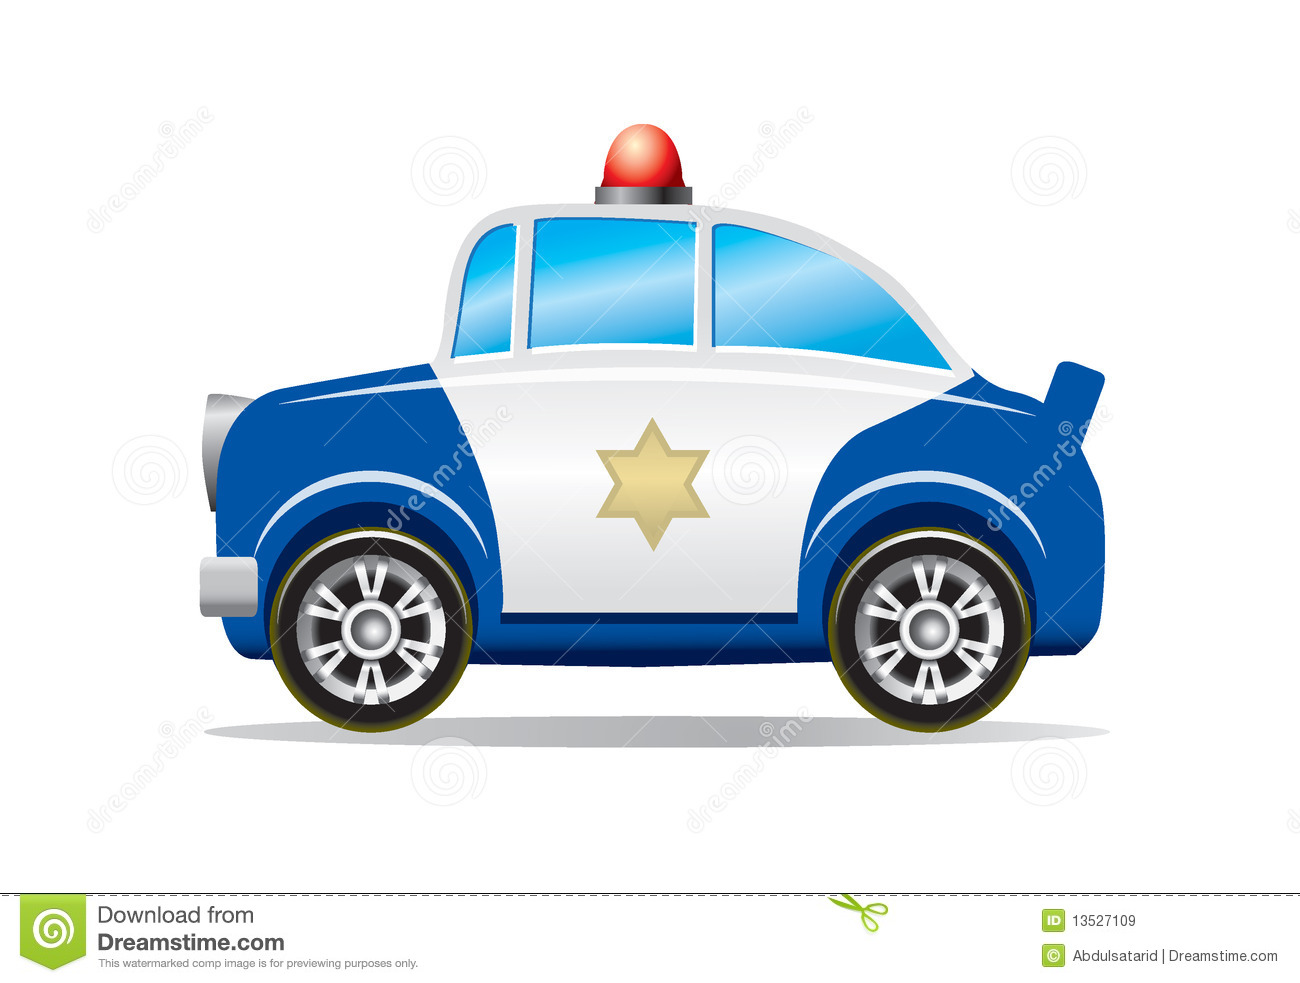 Police Car Cartoon Royalty Free Stock Images - Image: 13527109